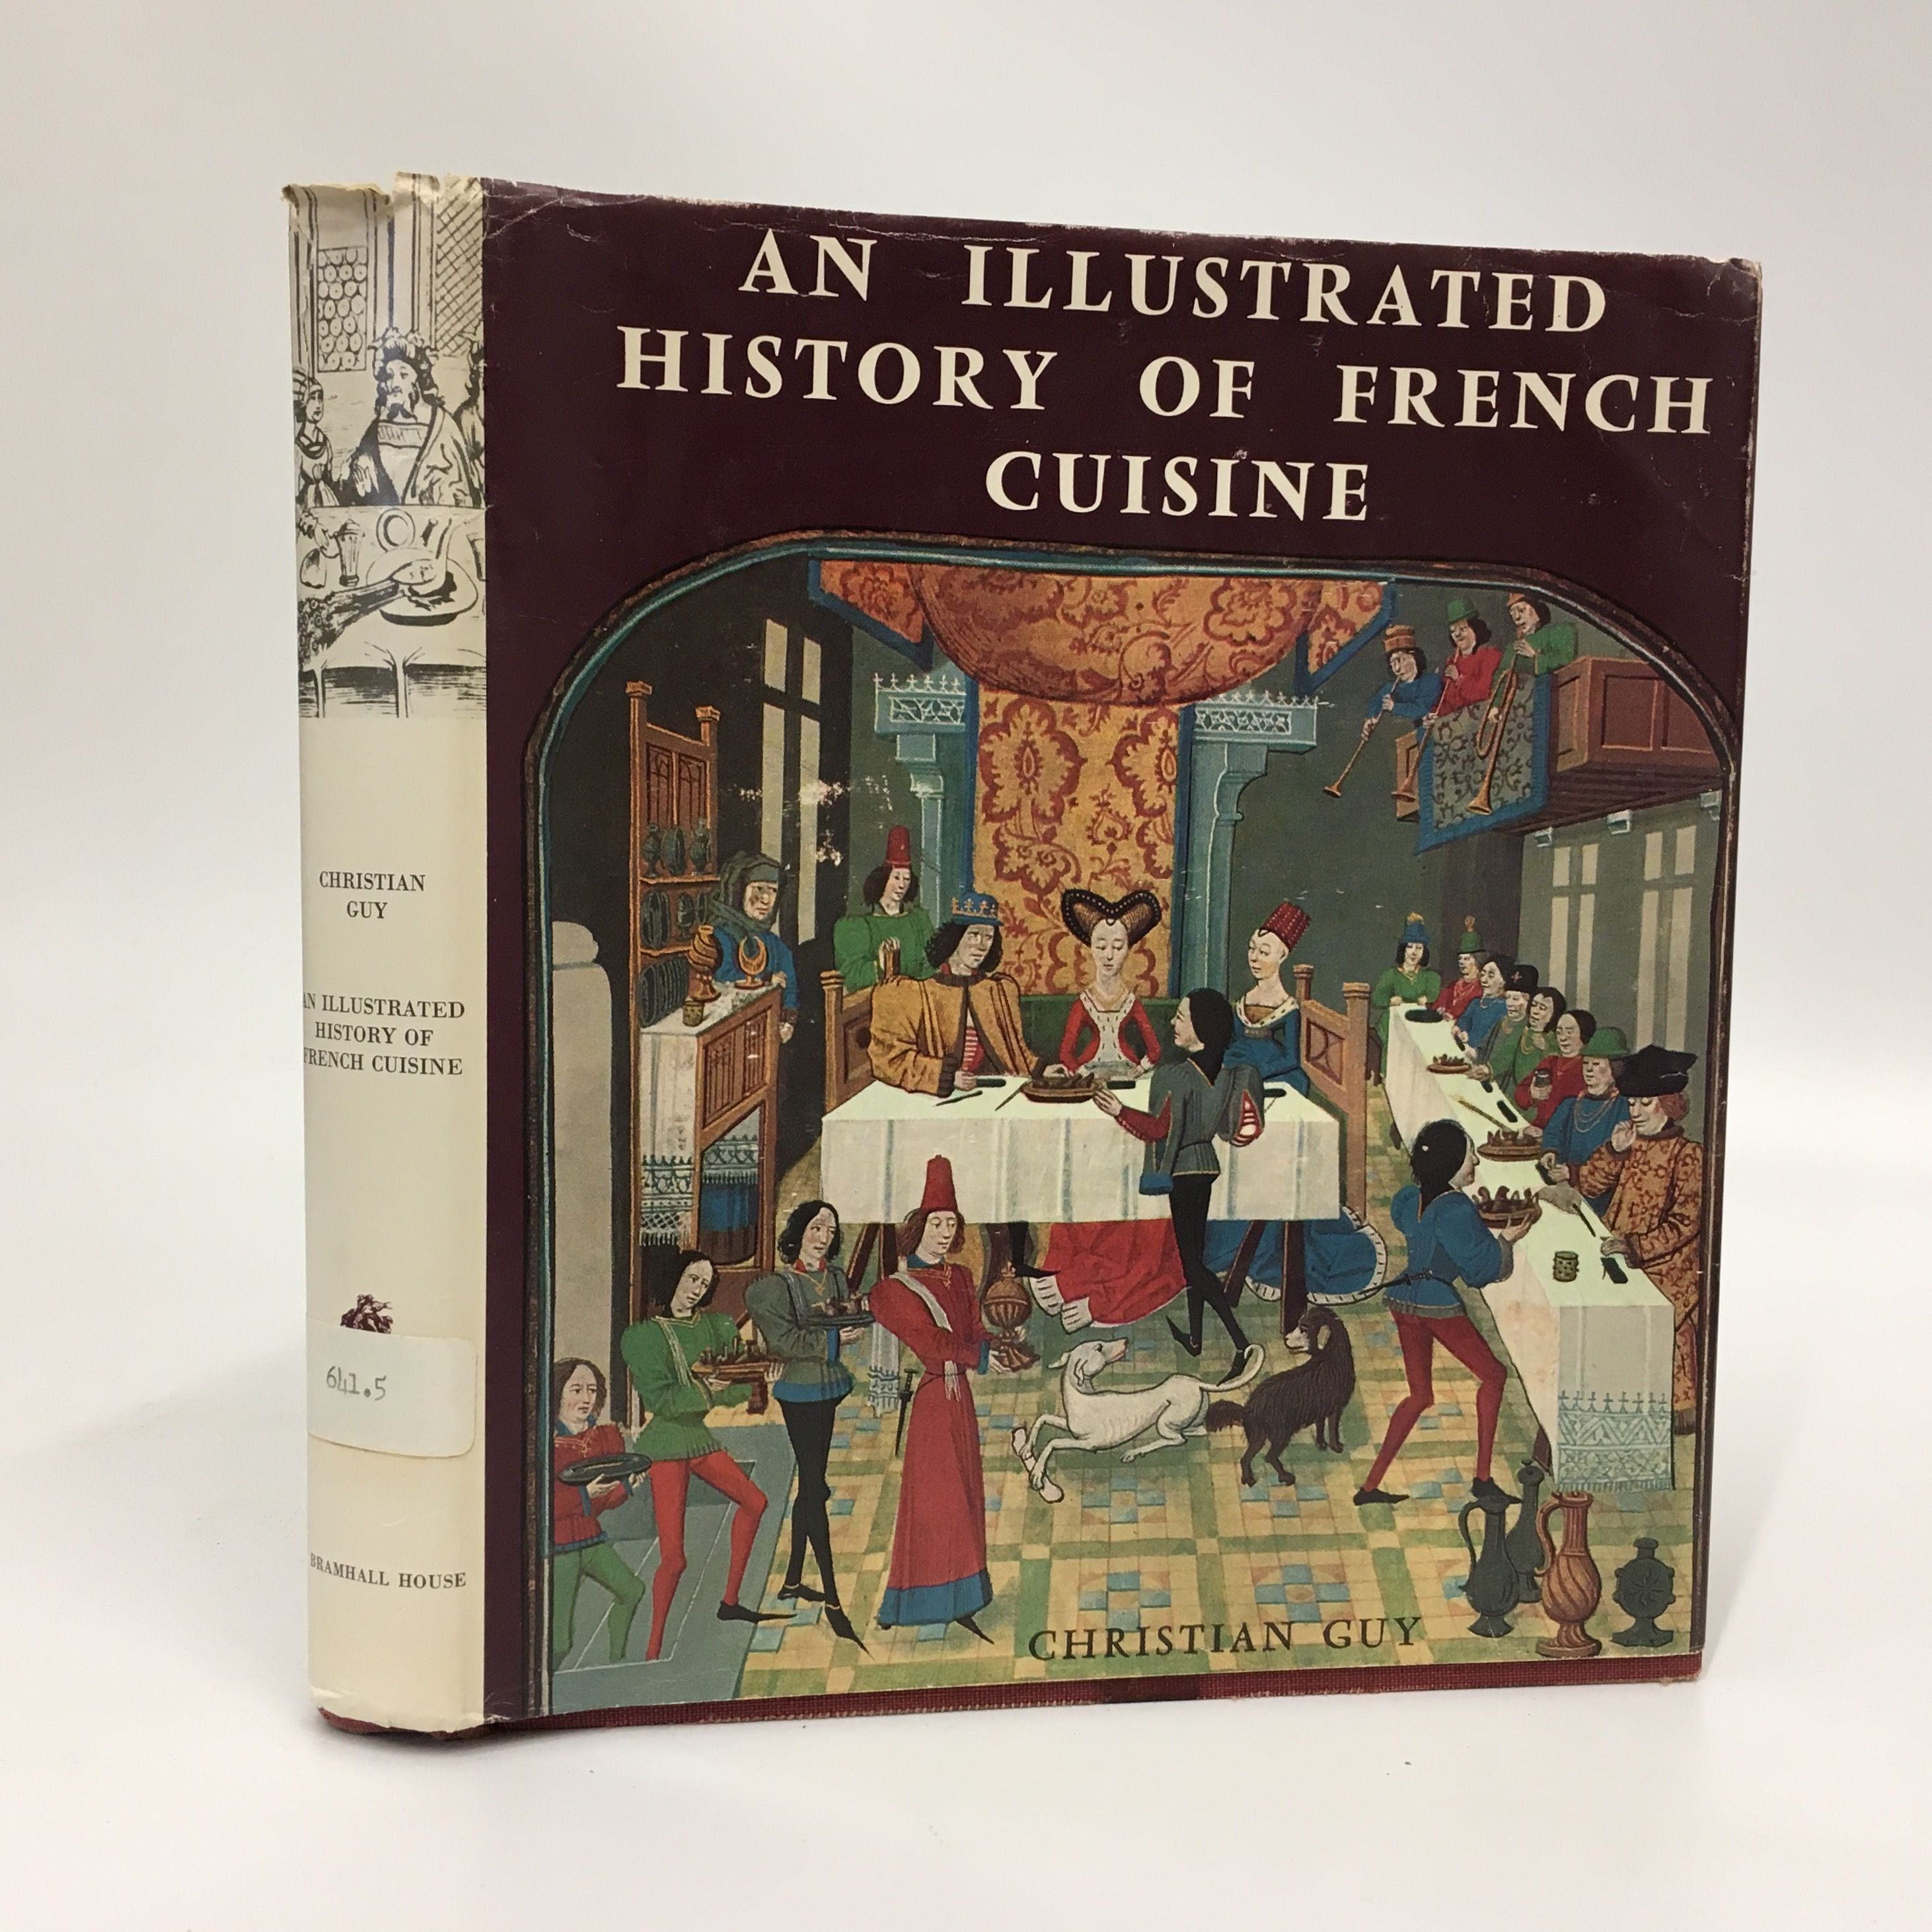 An Illustustrated History of French Cuisine from Charlemagne to Charles De Gaulle by Christian